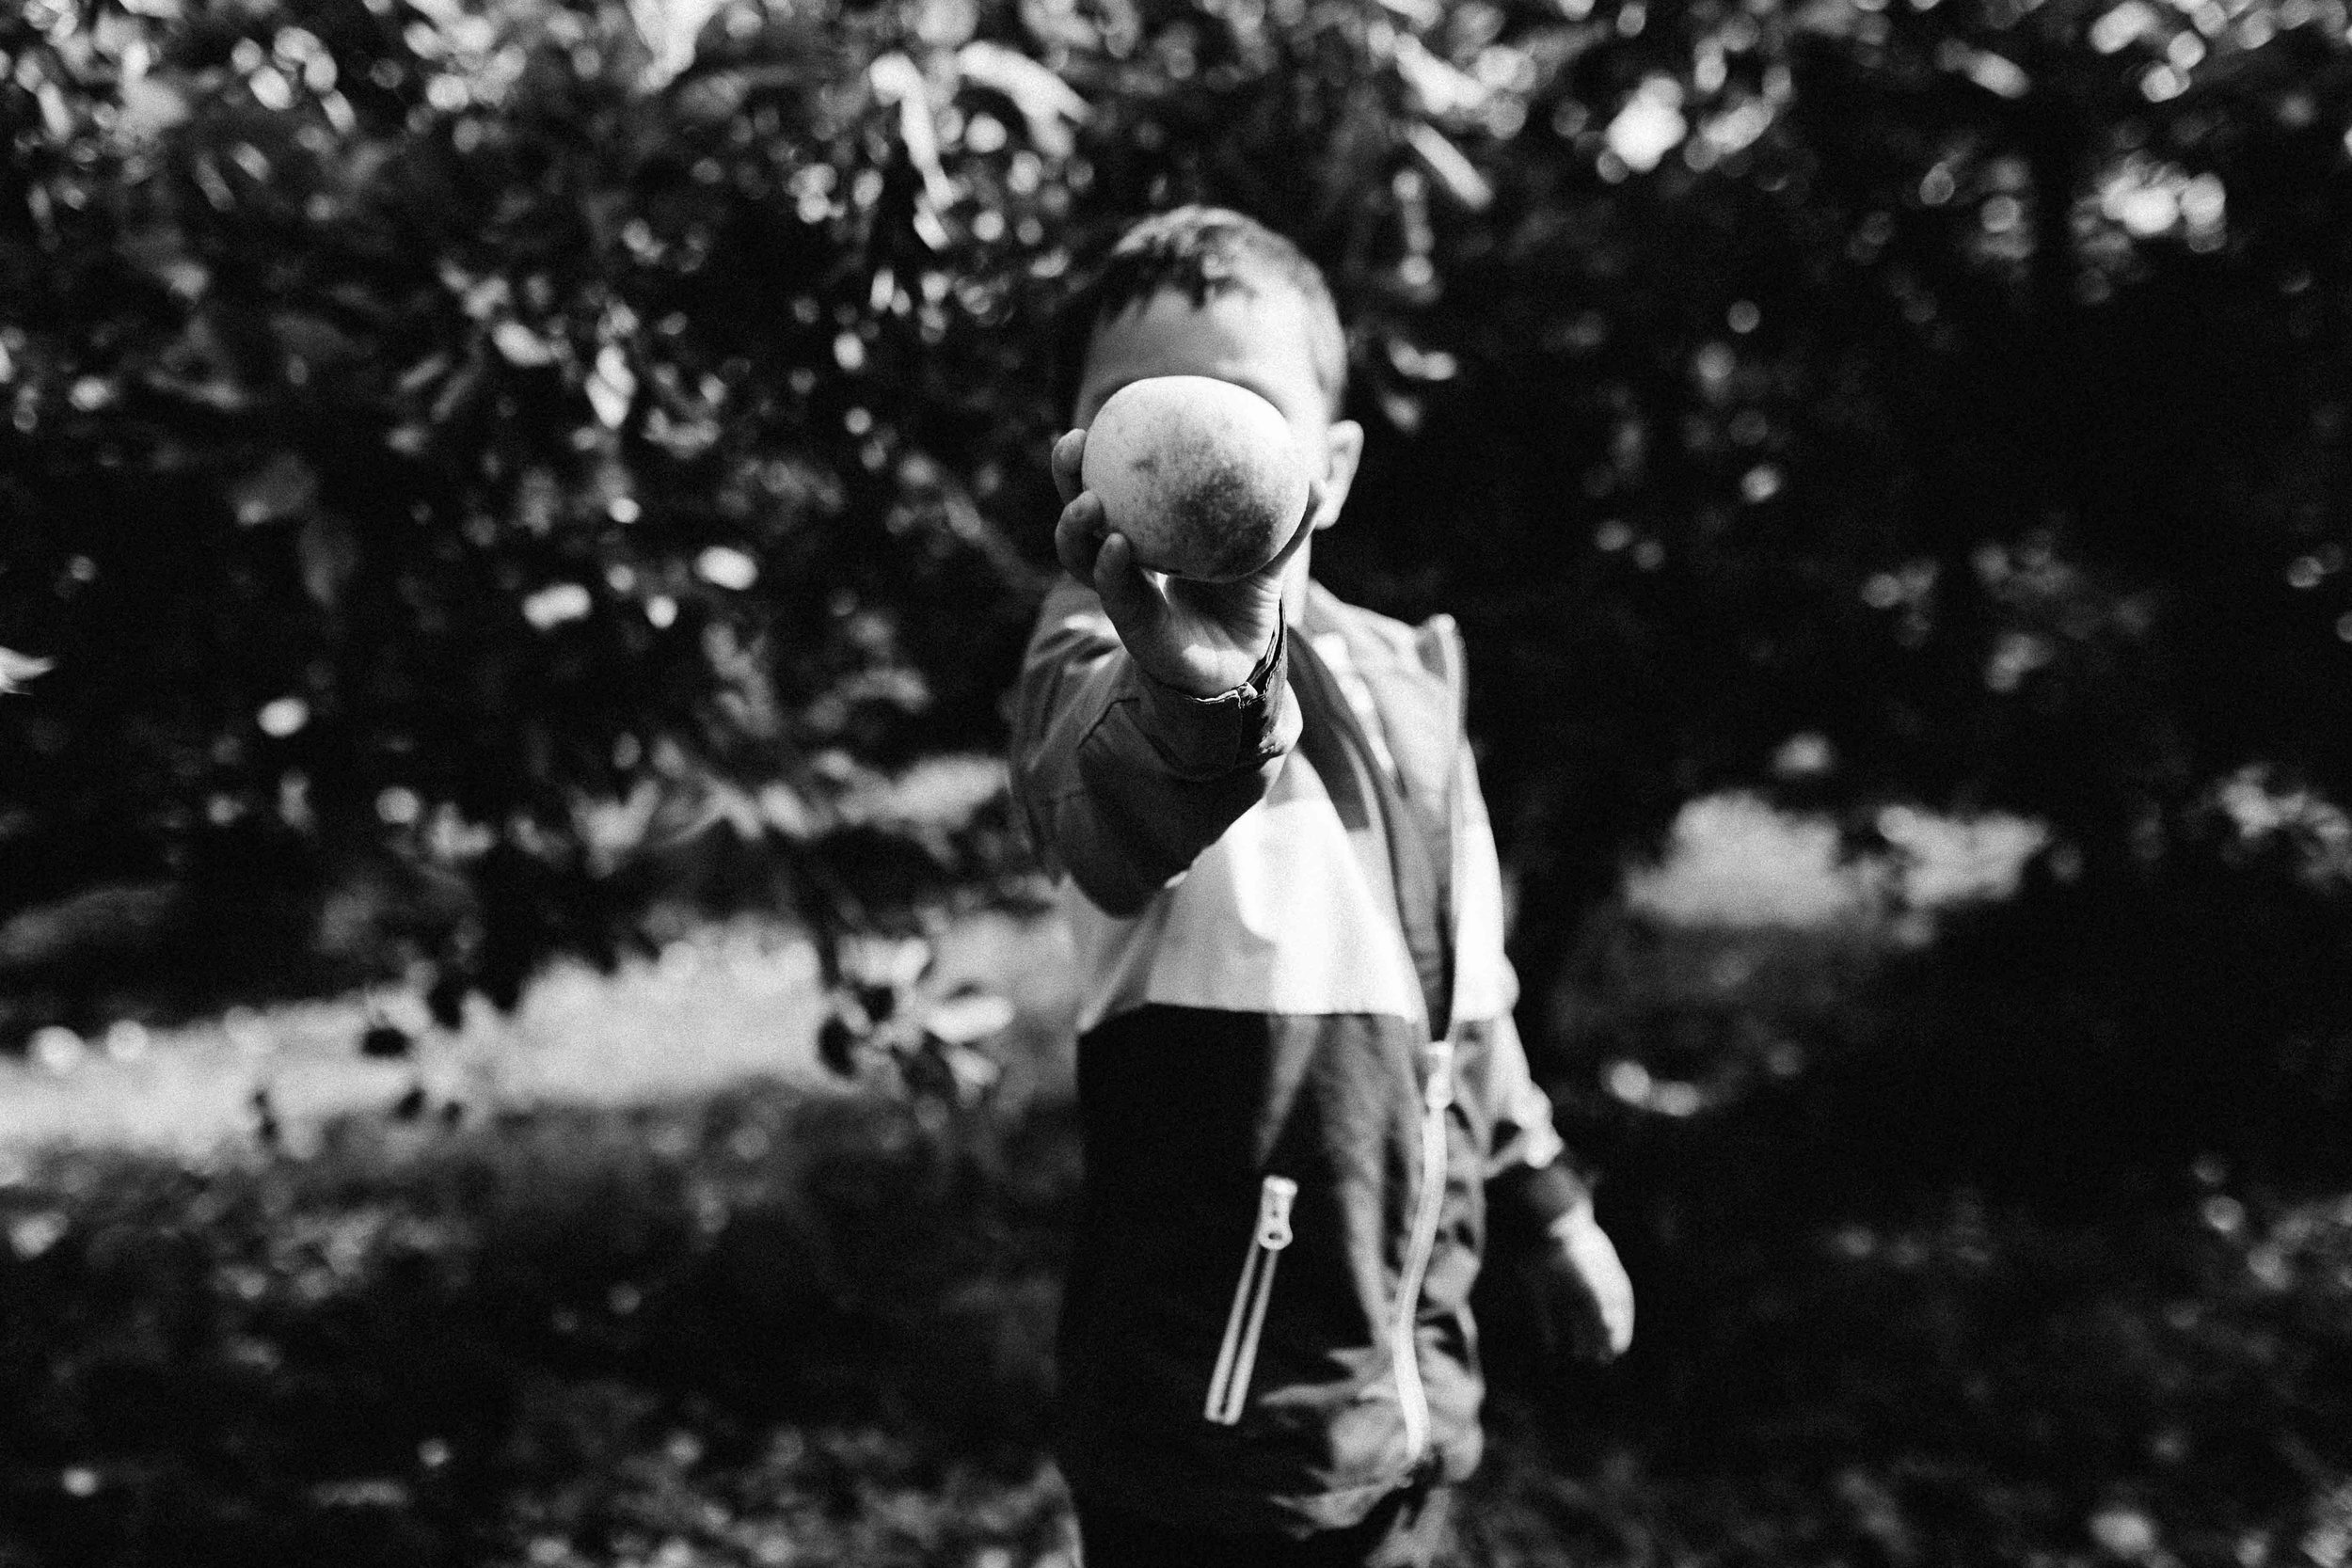 Boy showing an apple in front of his face